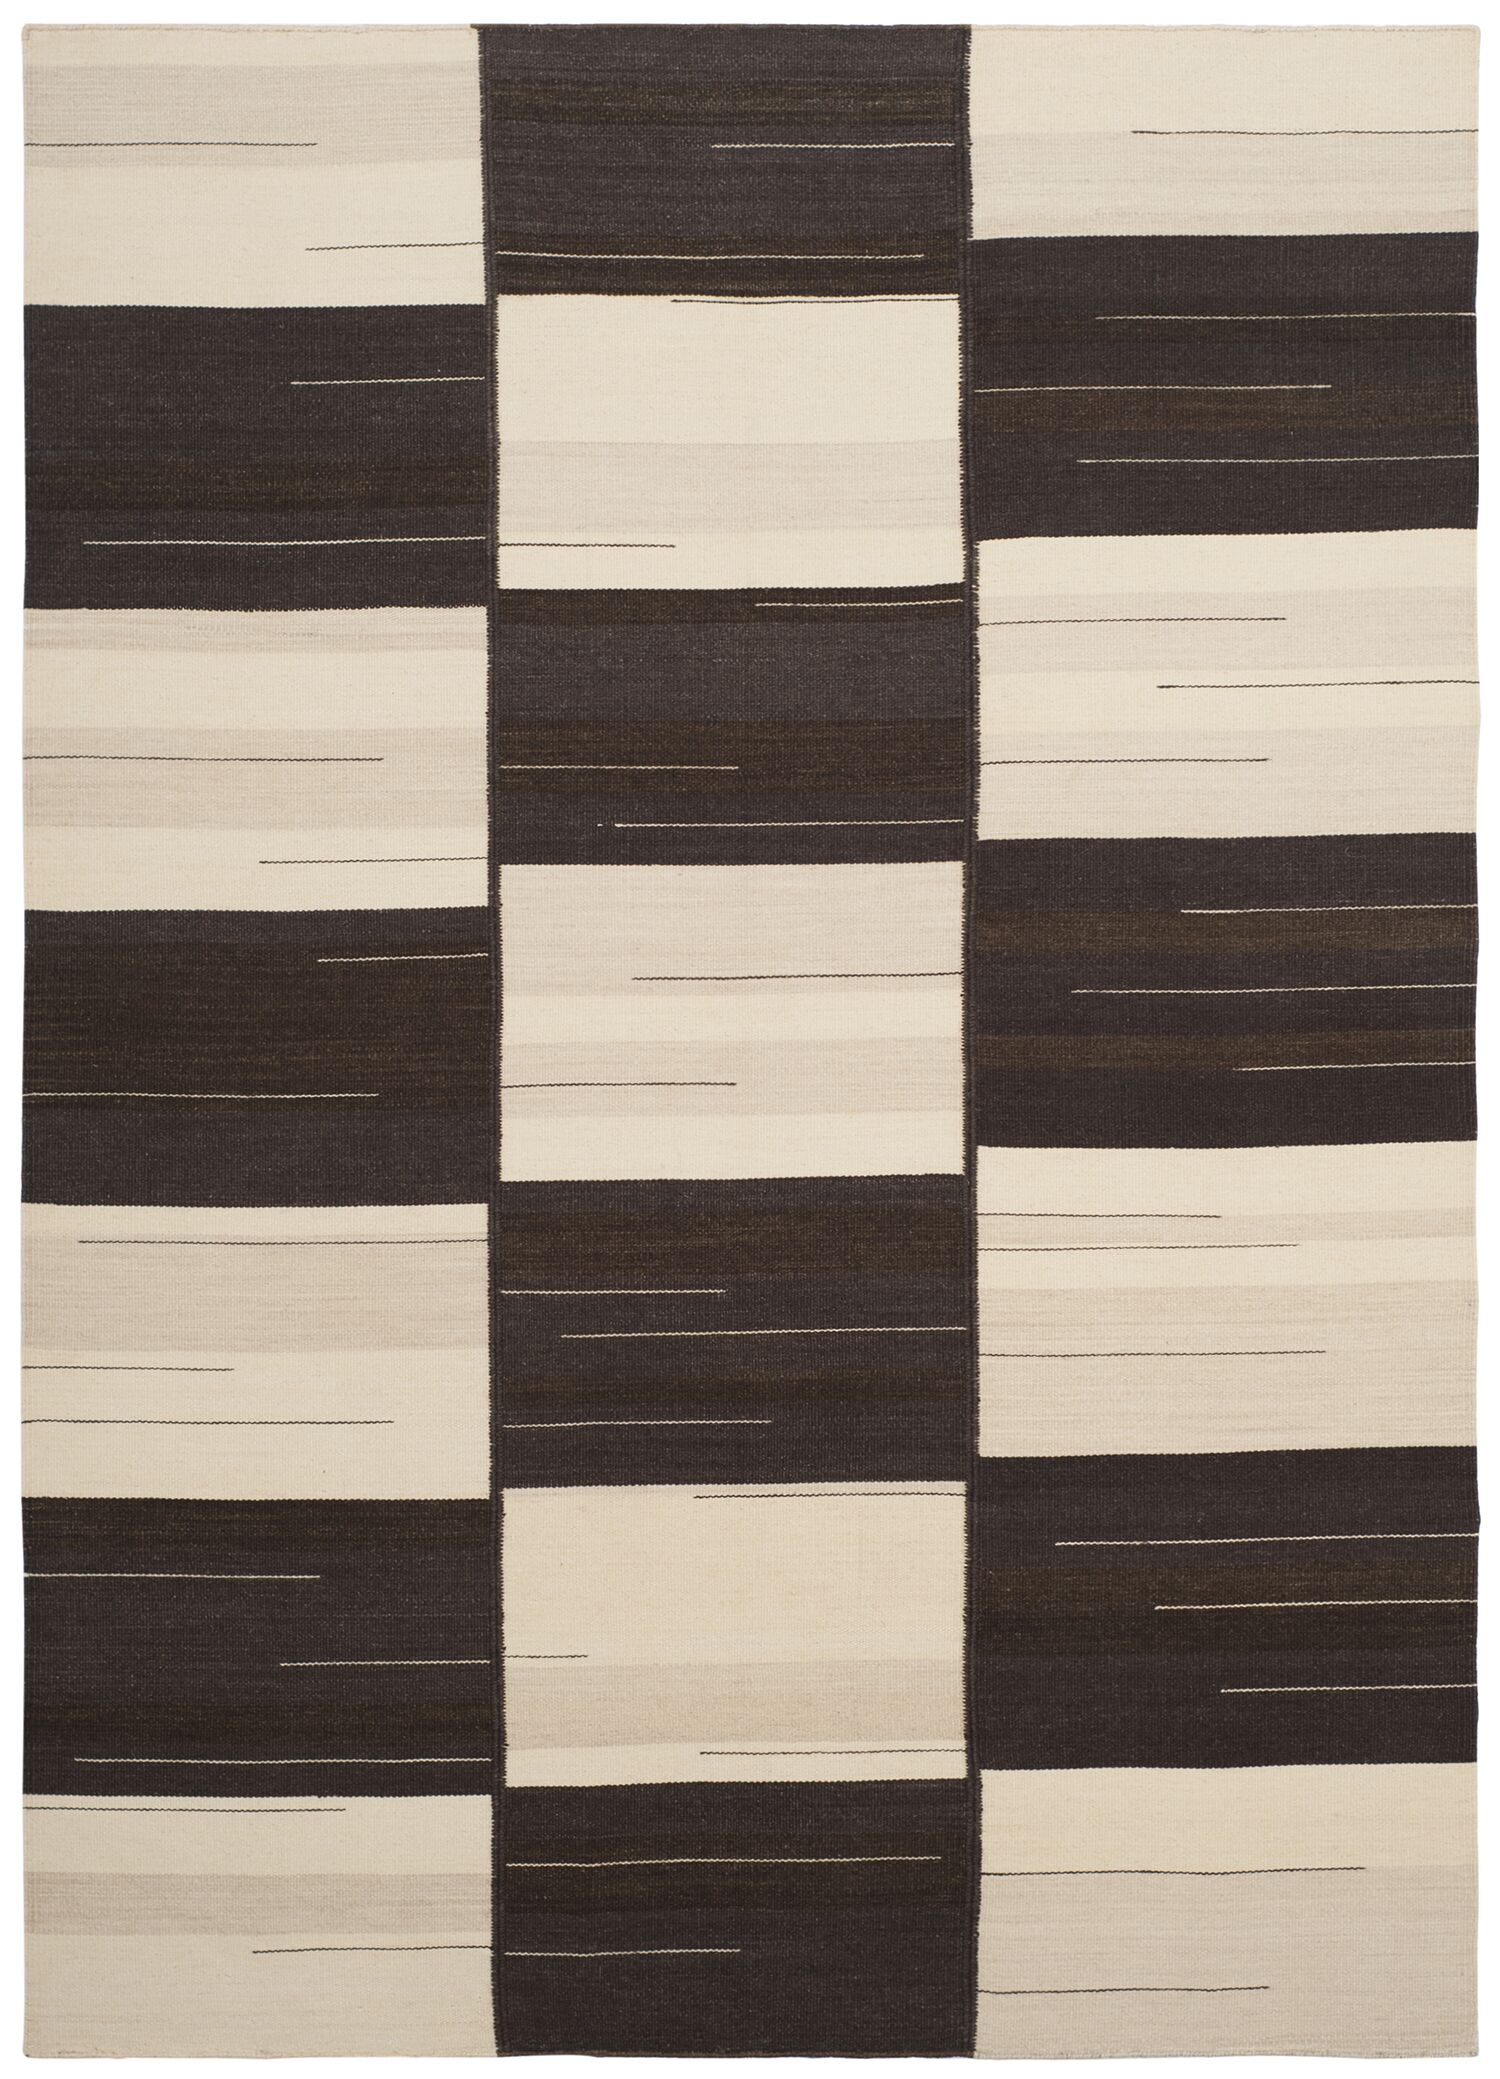 Amerina Hand-Woven Beige/Brown Area Rug Rug Size: Rectangle 5' x 8'